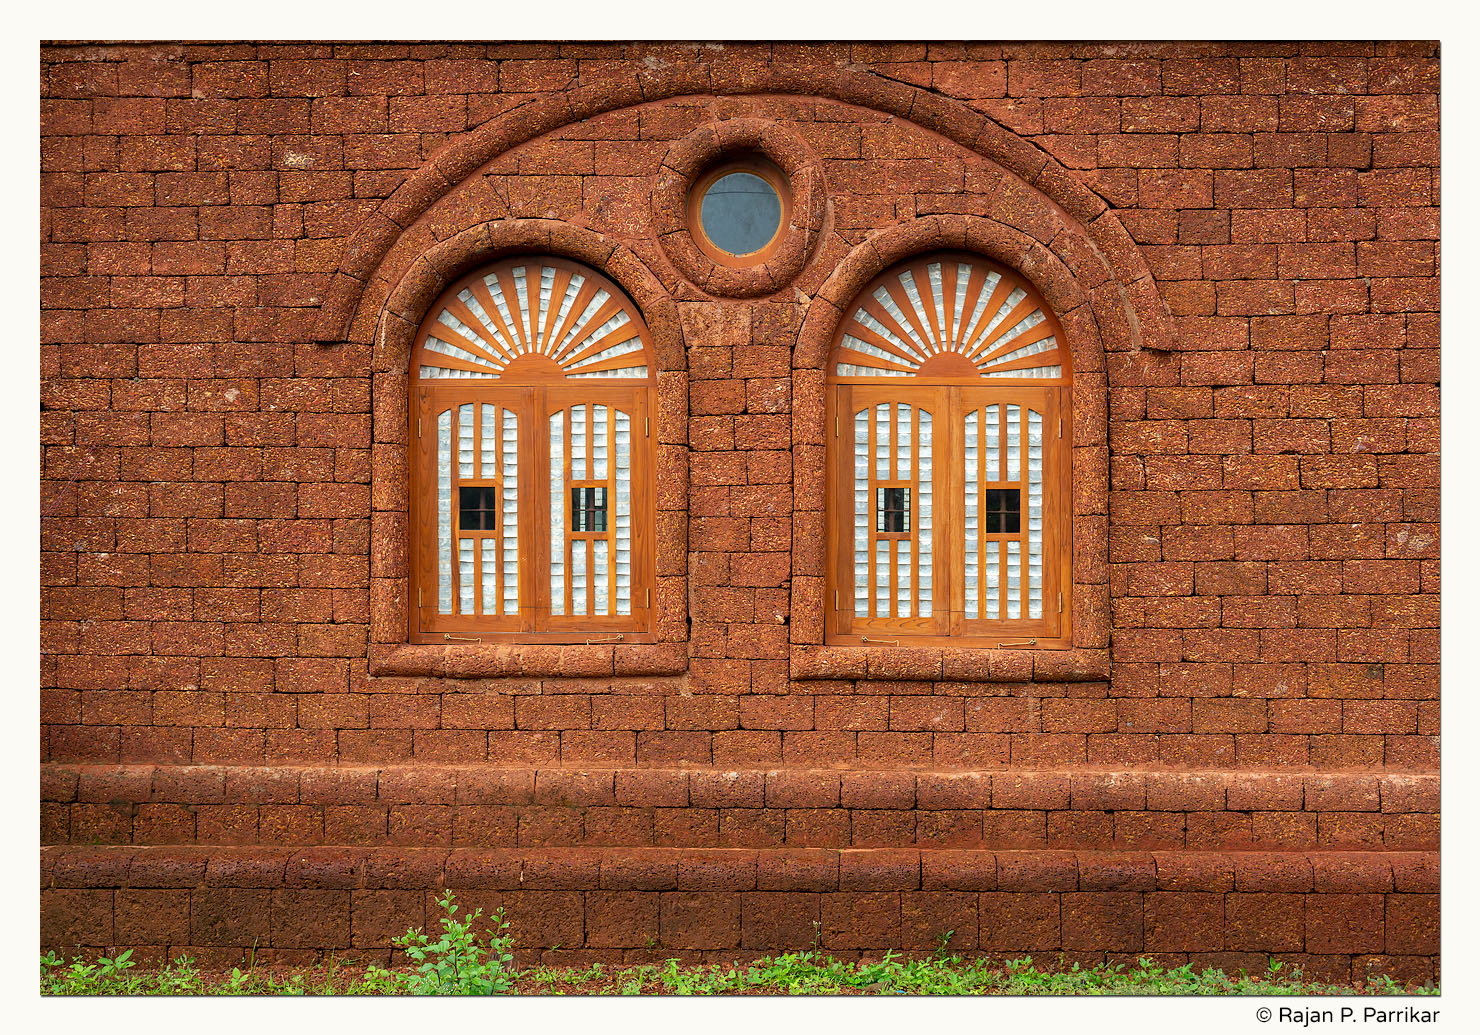 Chapel windows in Arpora, Goa